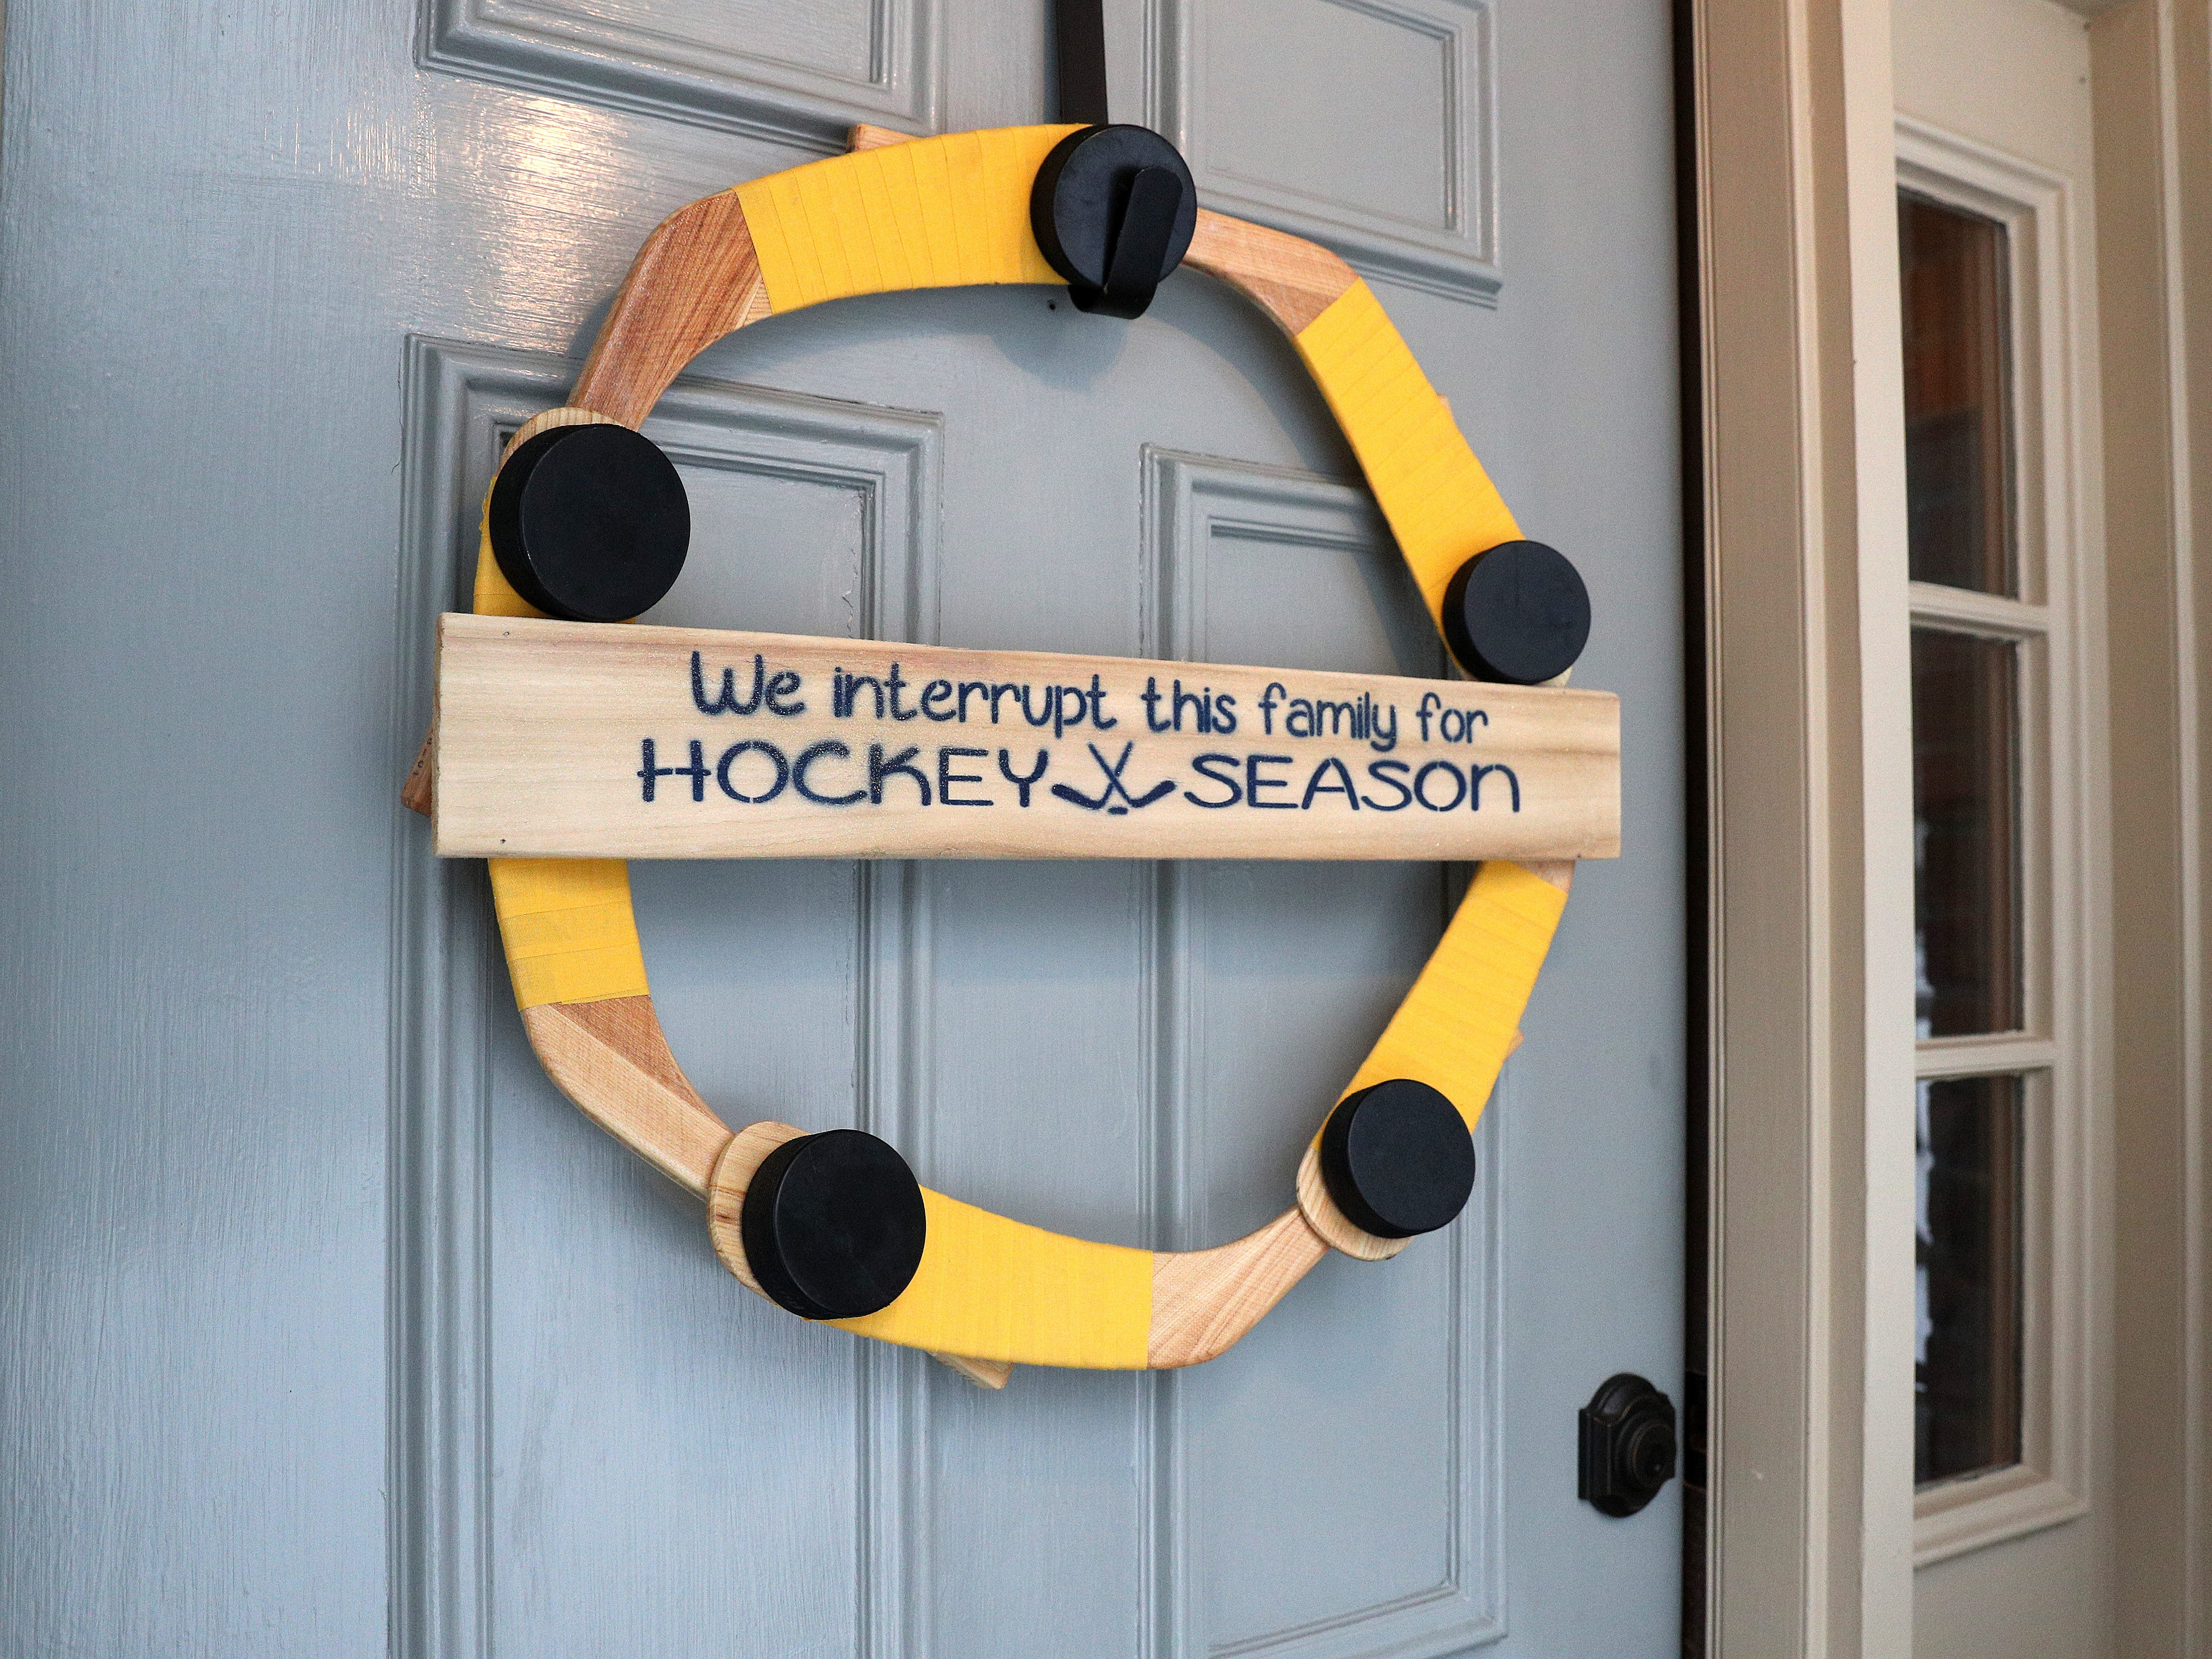 Visitors are welcomed to the Crozier household in Amherst, New York, with a hockey stick wreath on the front door.